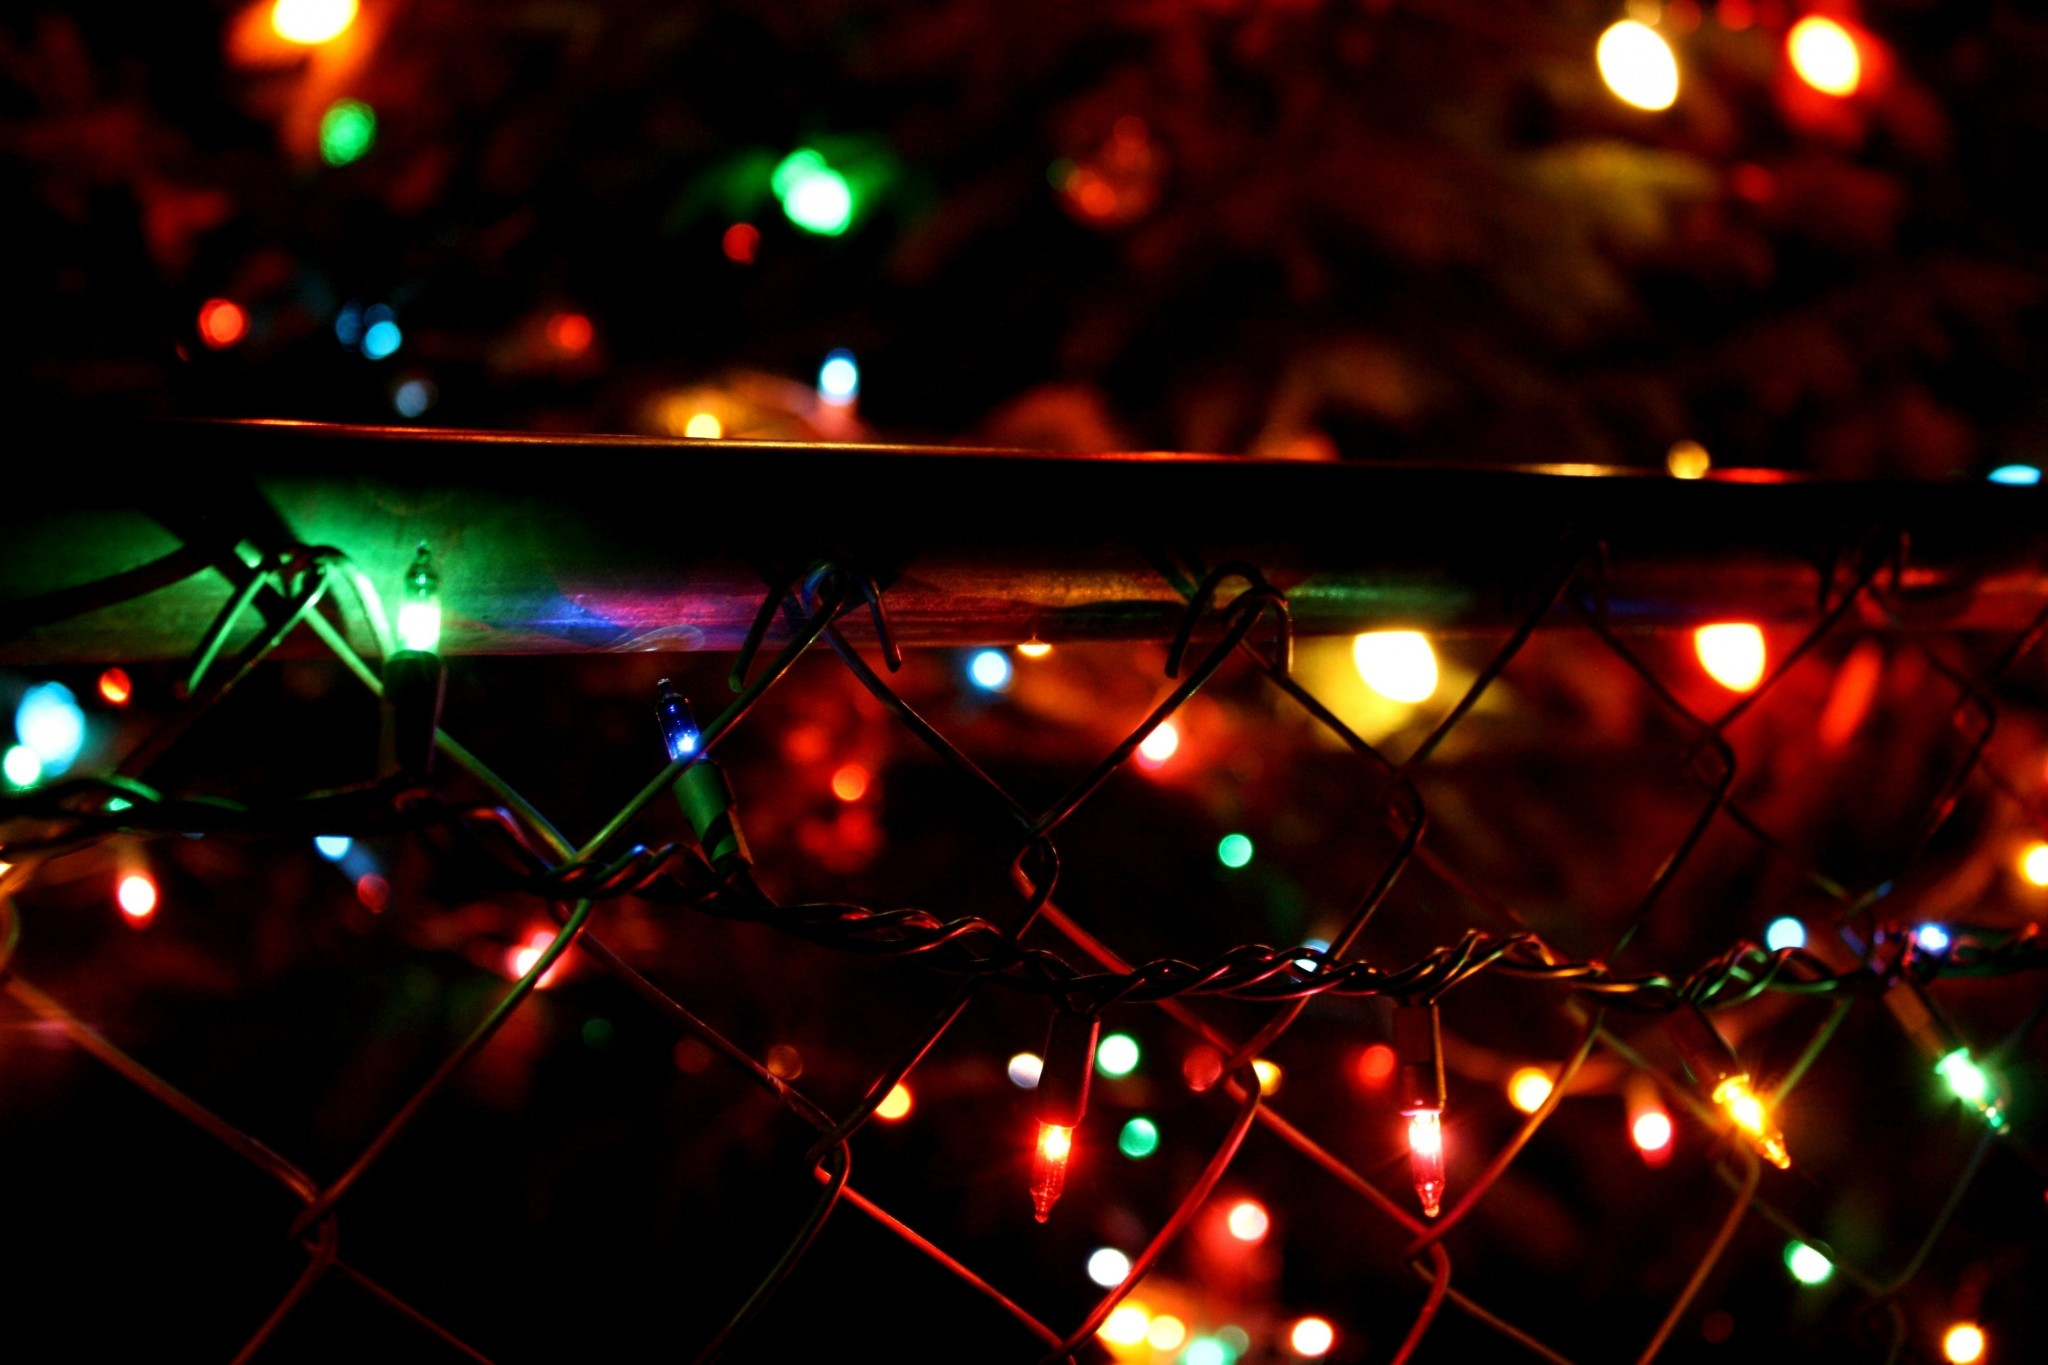 1297886 most popular christmas wallpaper for mac 2048x1365 for iphone